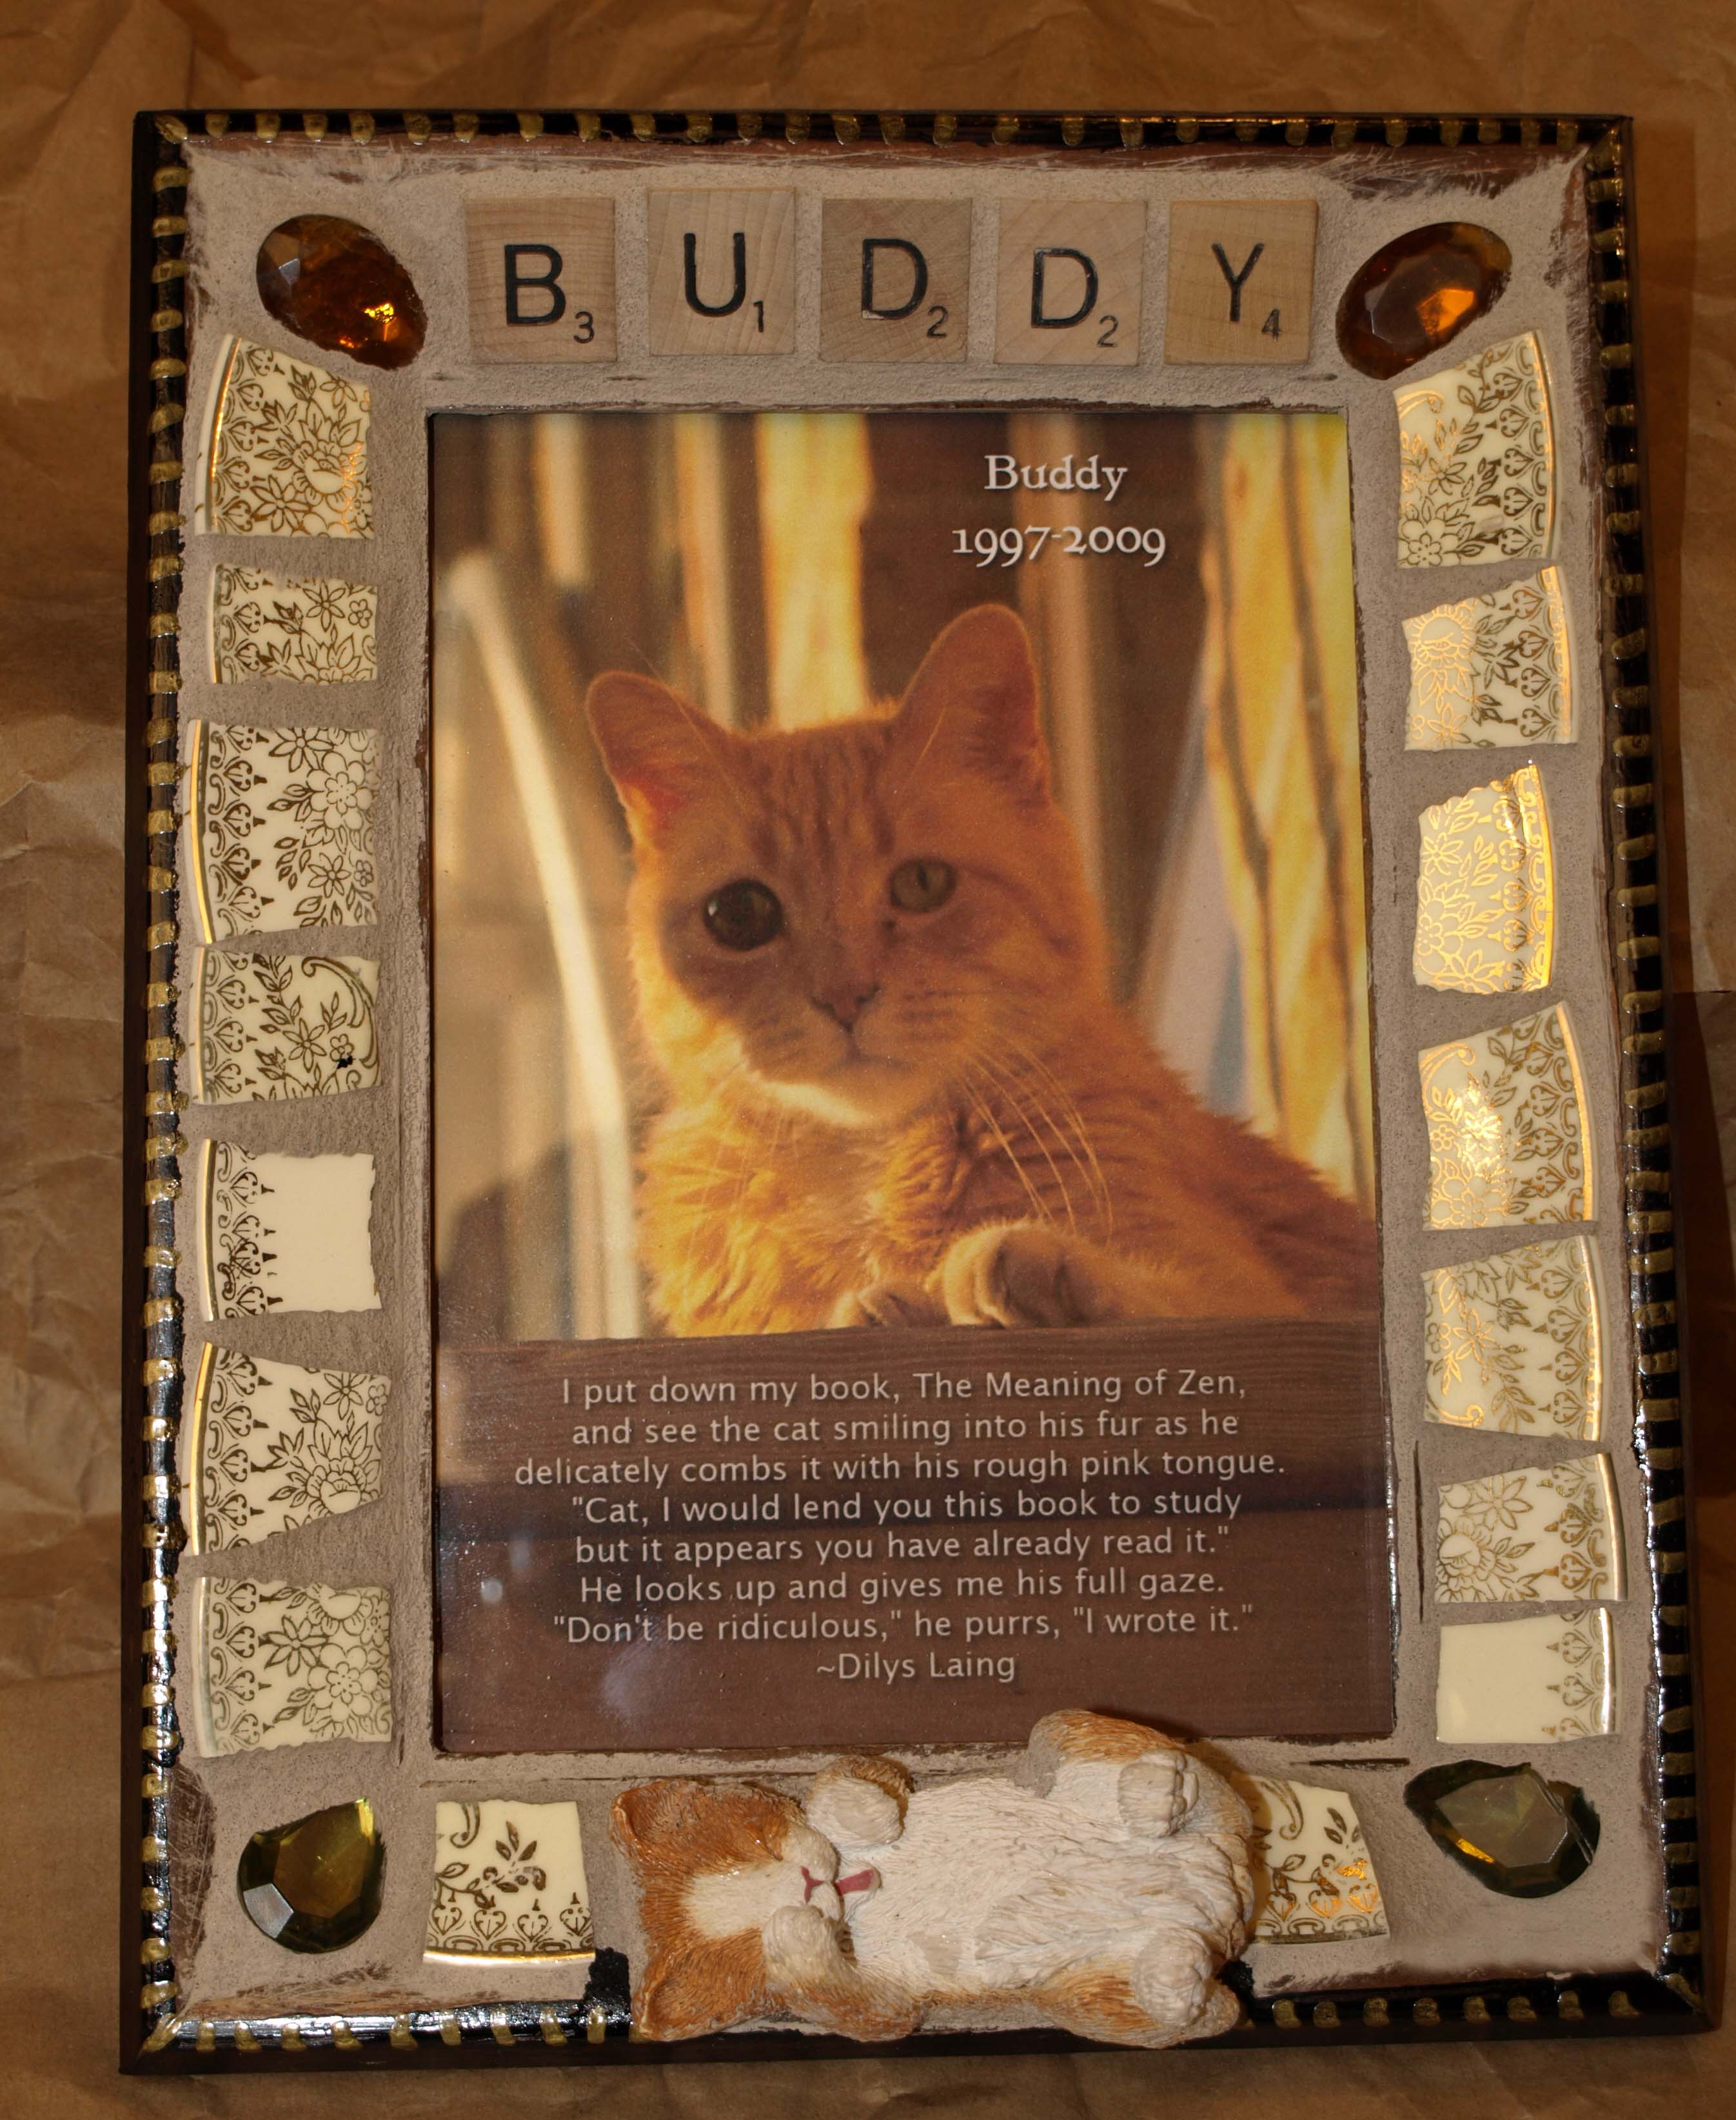 Buddy the Wonder Cat